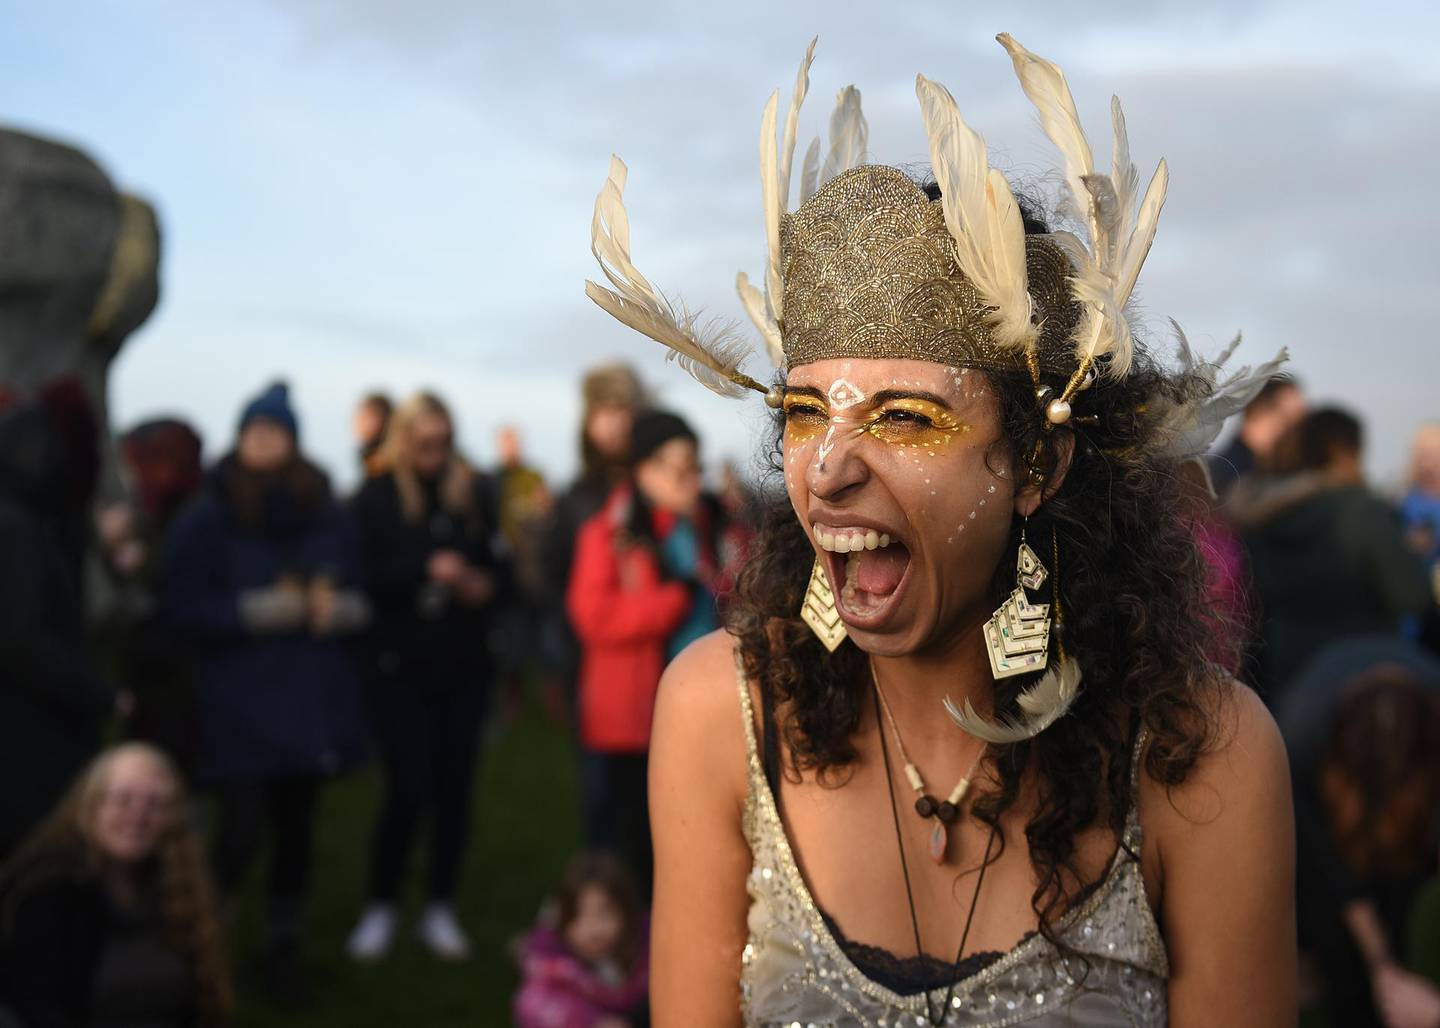 A woman celebrates after the winter solstice at Stonehenge, England, Dec. 22, 2018. Stonehenge, a United Nations Educational, Scientific and Cultural Organization World Heritage site, has been a place of worship and celebration during the winter and summer solstices for many generations. (U.S. Air Force photo by Airman 1st Class Madeline Herzog)